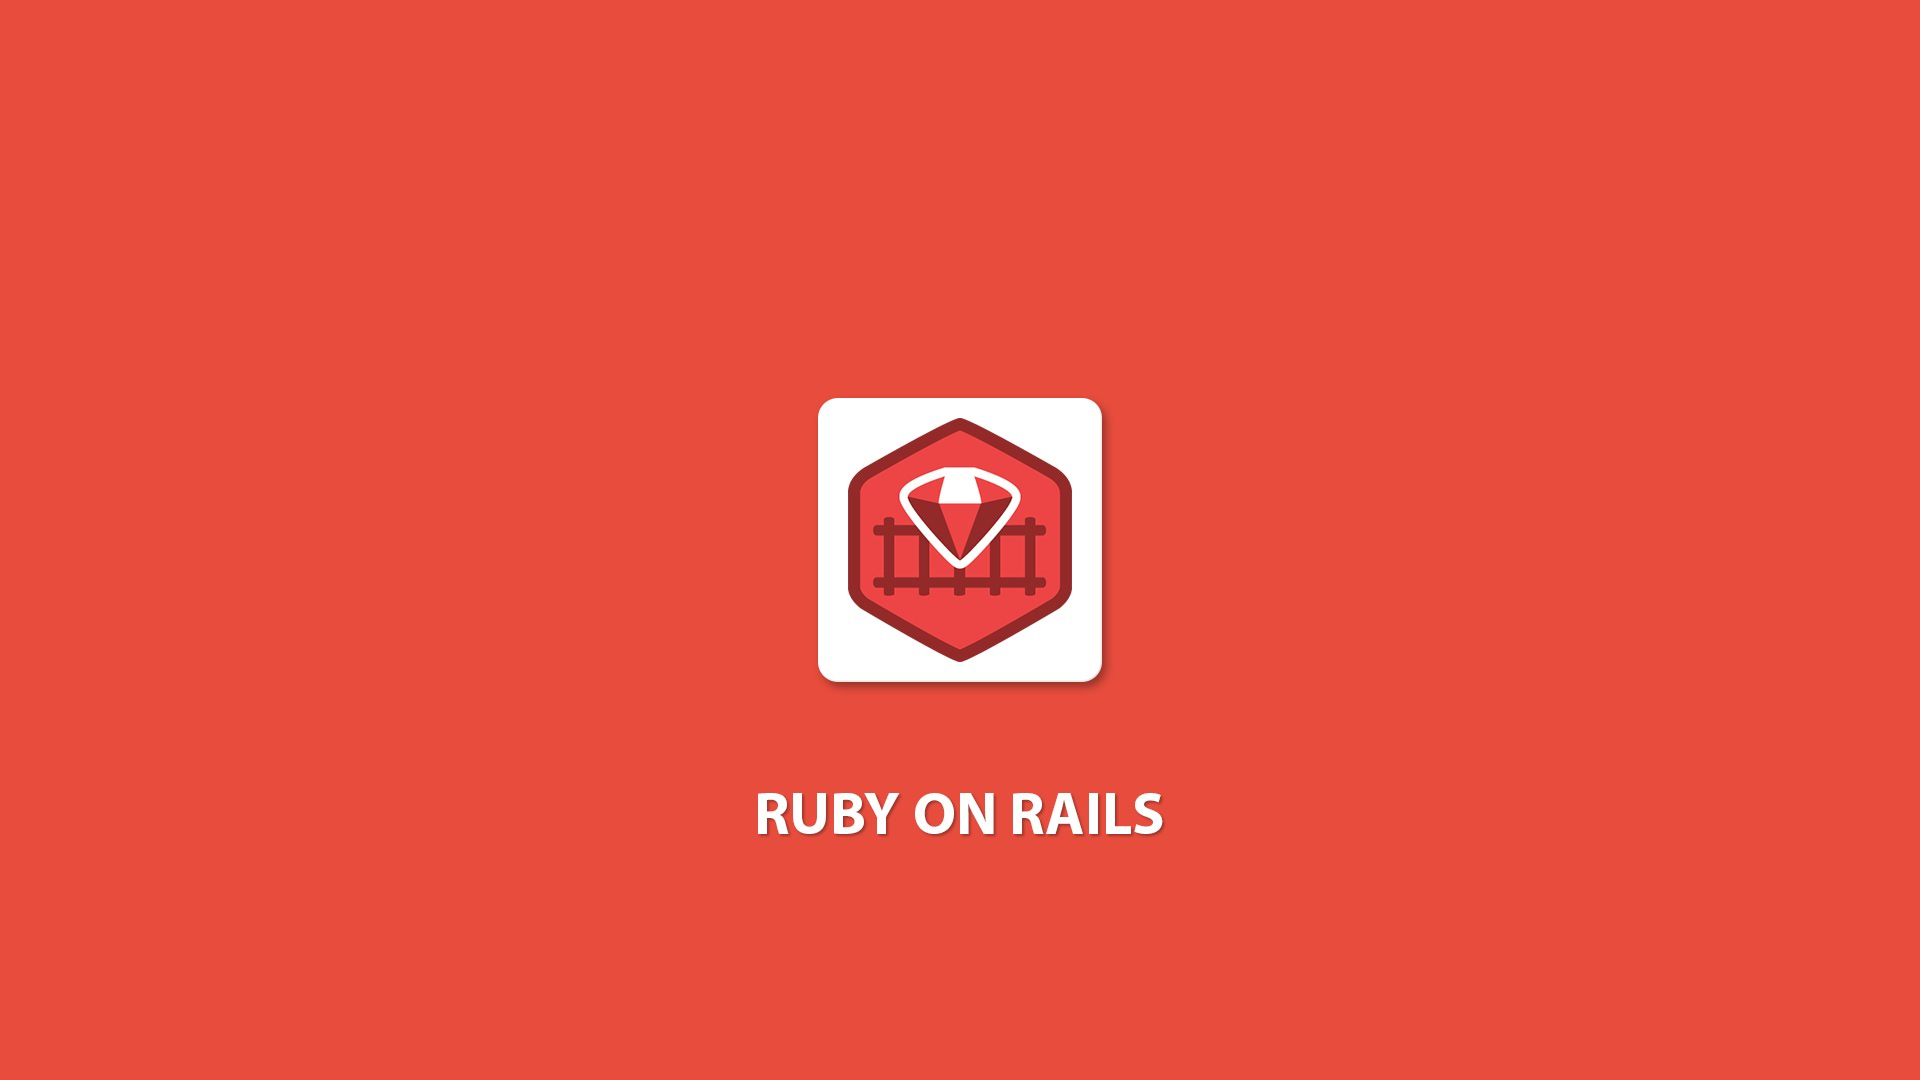 Setup A Ubuntu VPS For Hosting Ruby On Rails Applications